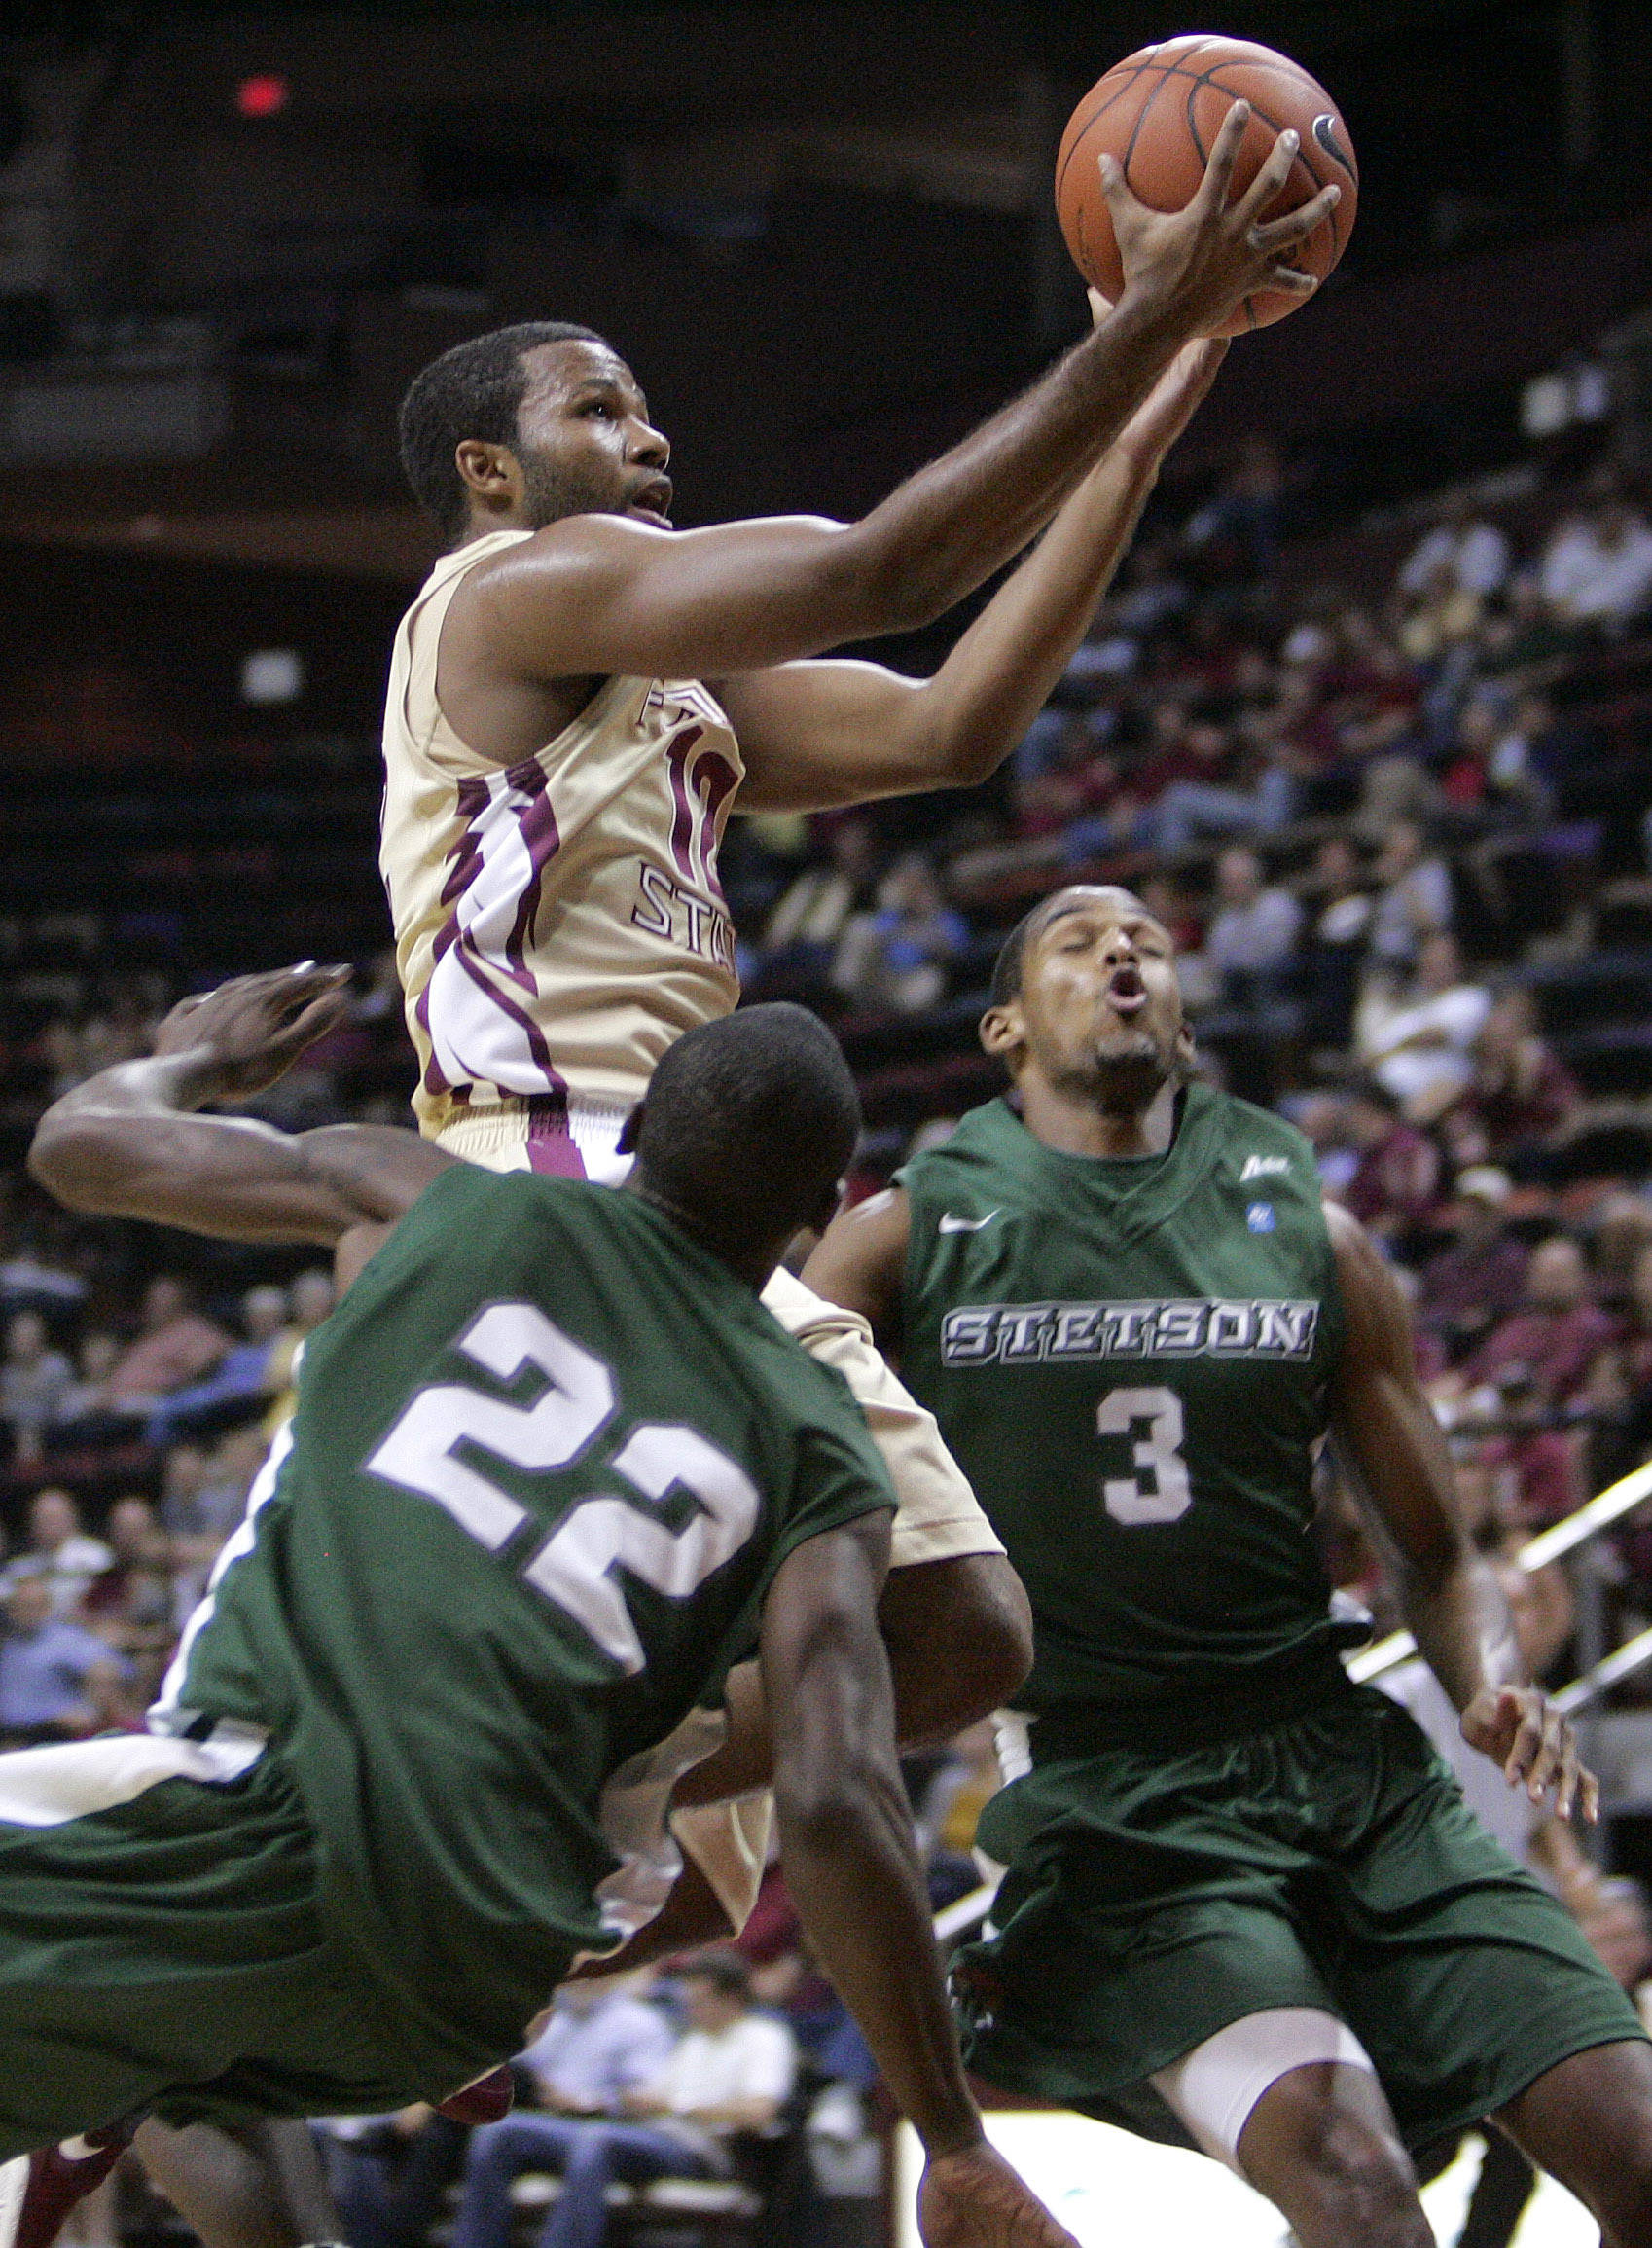 Florida State's Jeff Peterson, top, splits the defense of Stetson's Tyshawn Patterson and Willie Green on his way to the hoop. (AP Photo/Steve Cannon)